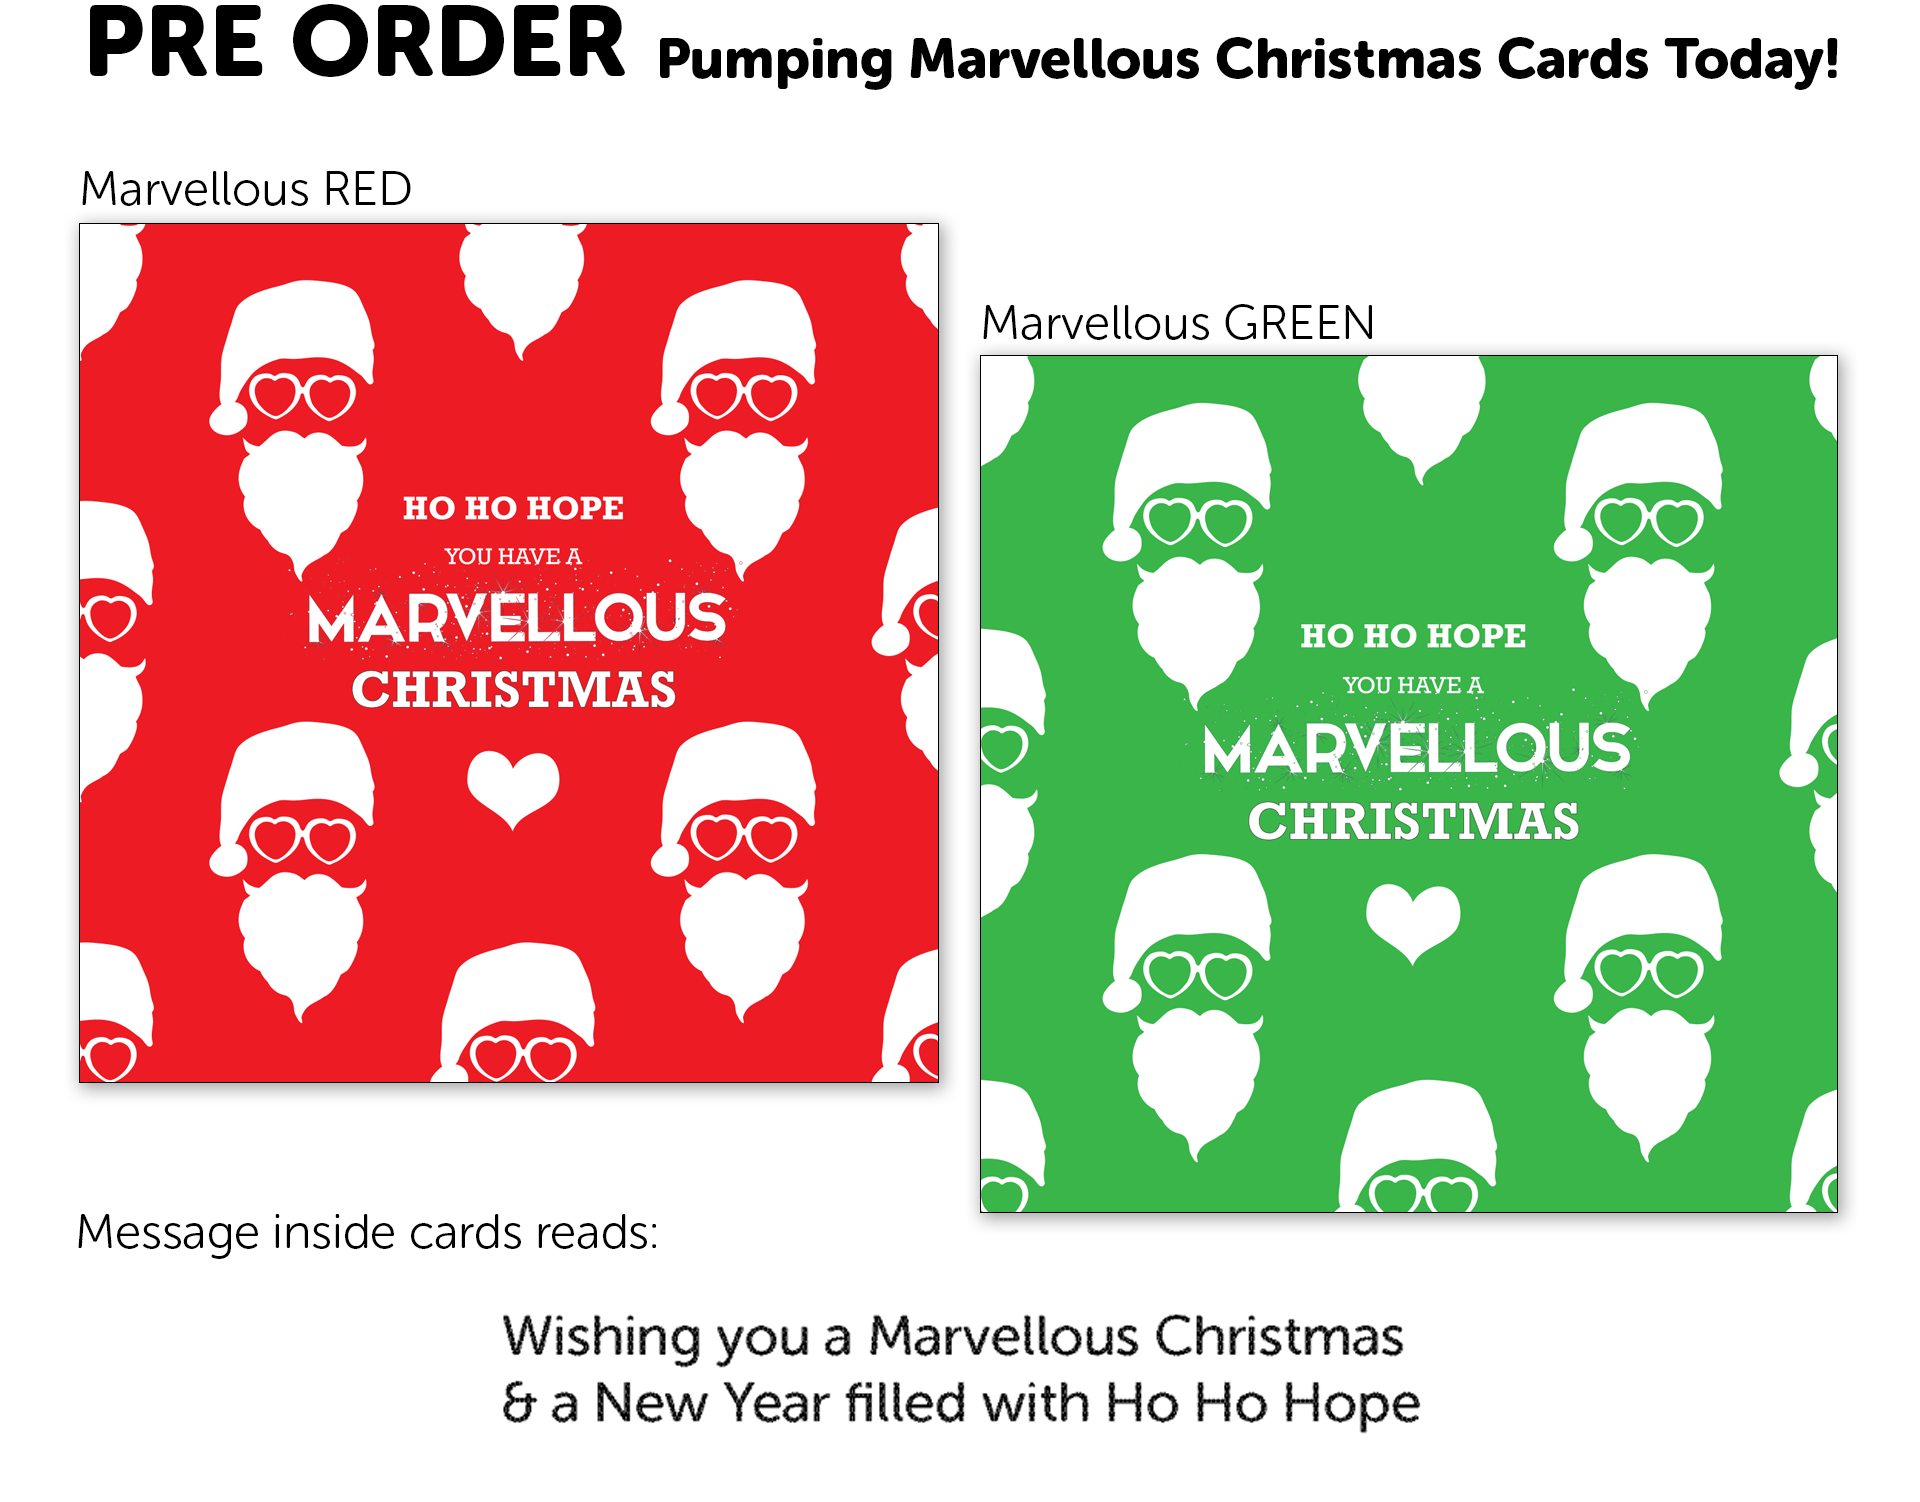 Pumping Marvellous Charity Christmas Cards